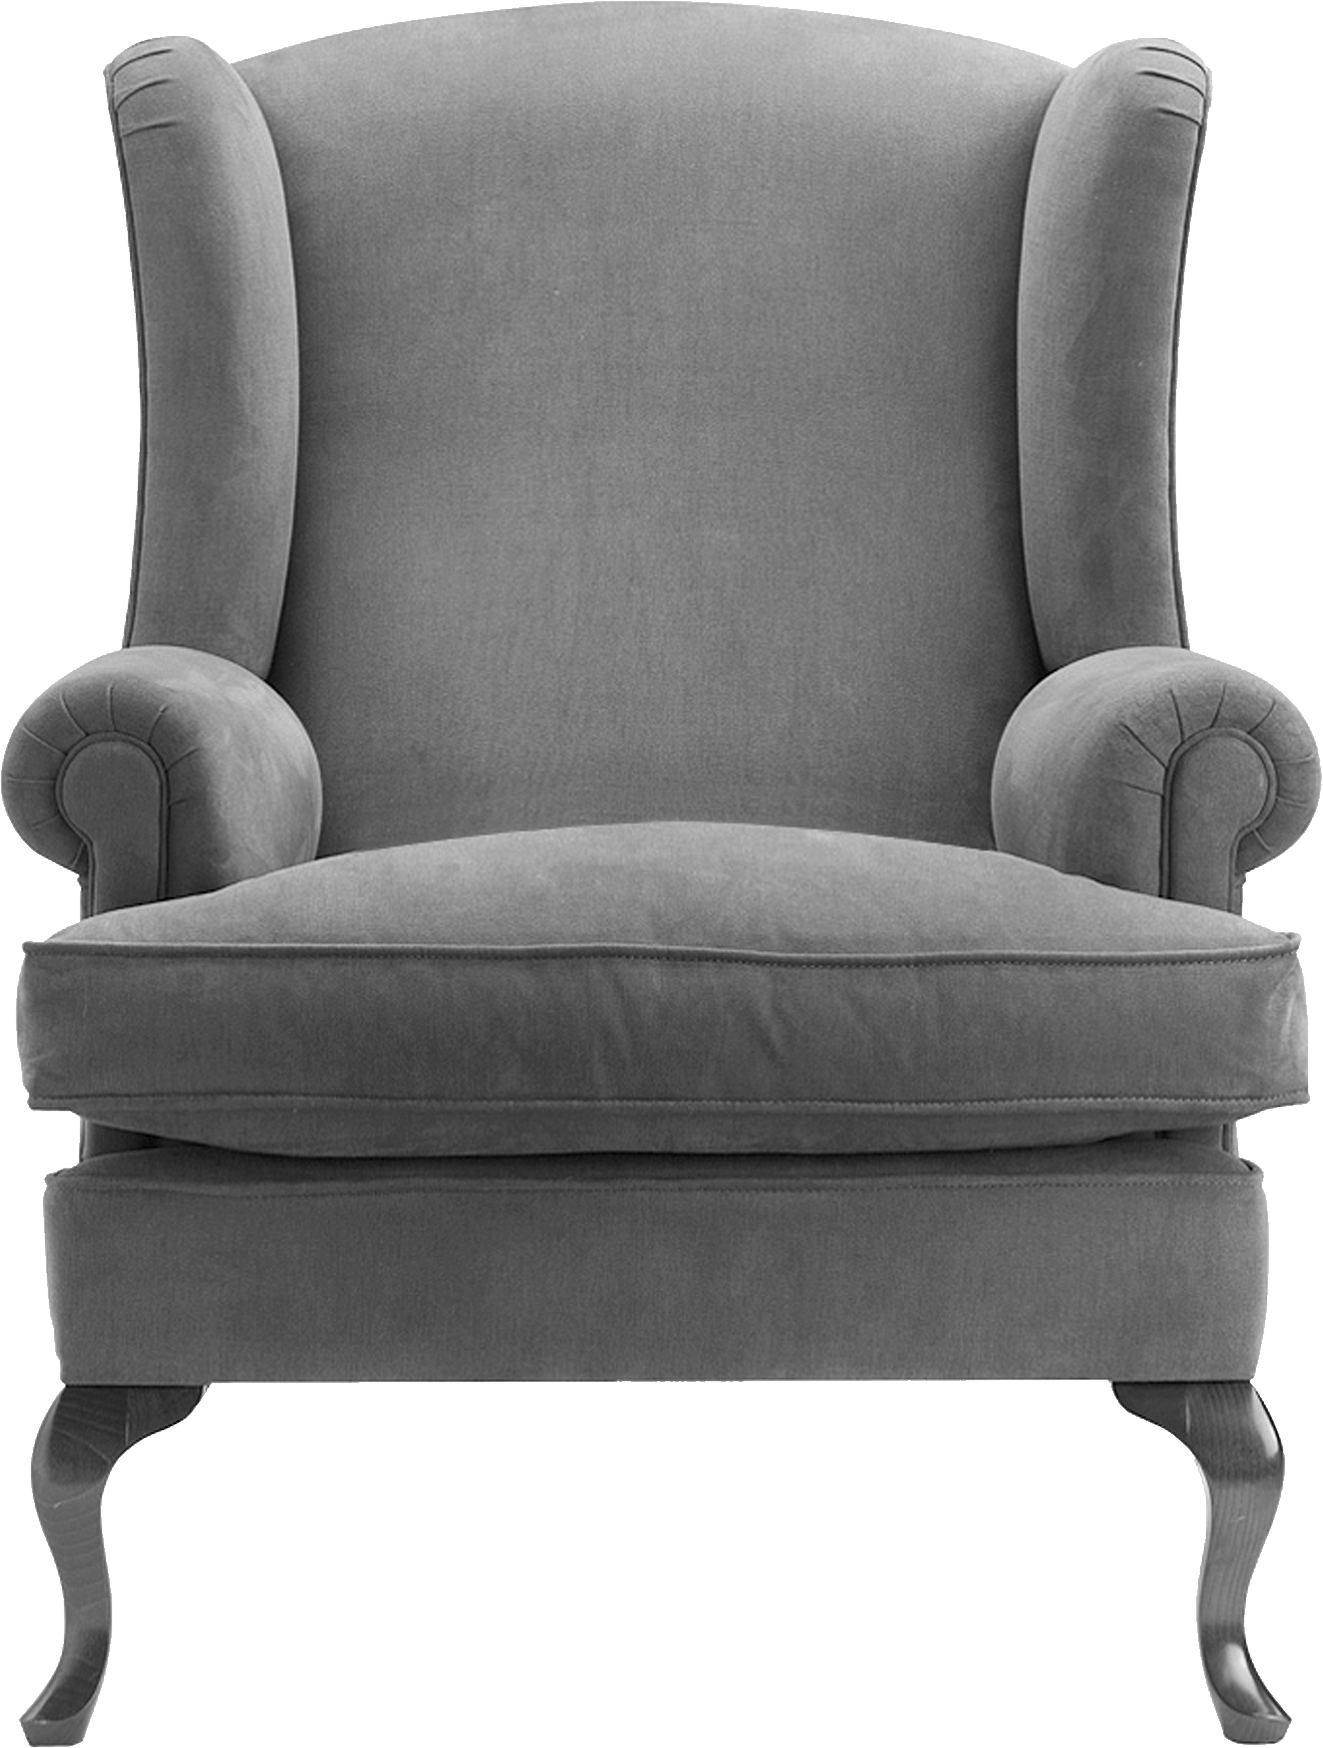 Armchair HD PNG Transparent Armchair HD.PNG Images. | PlusPNG